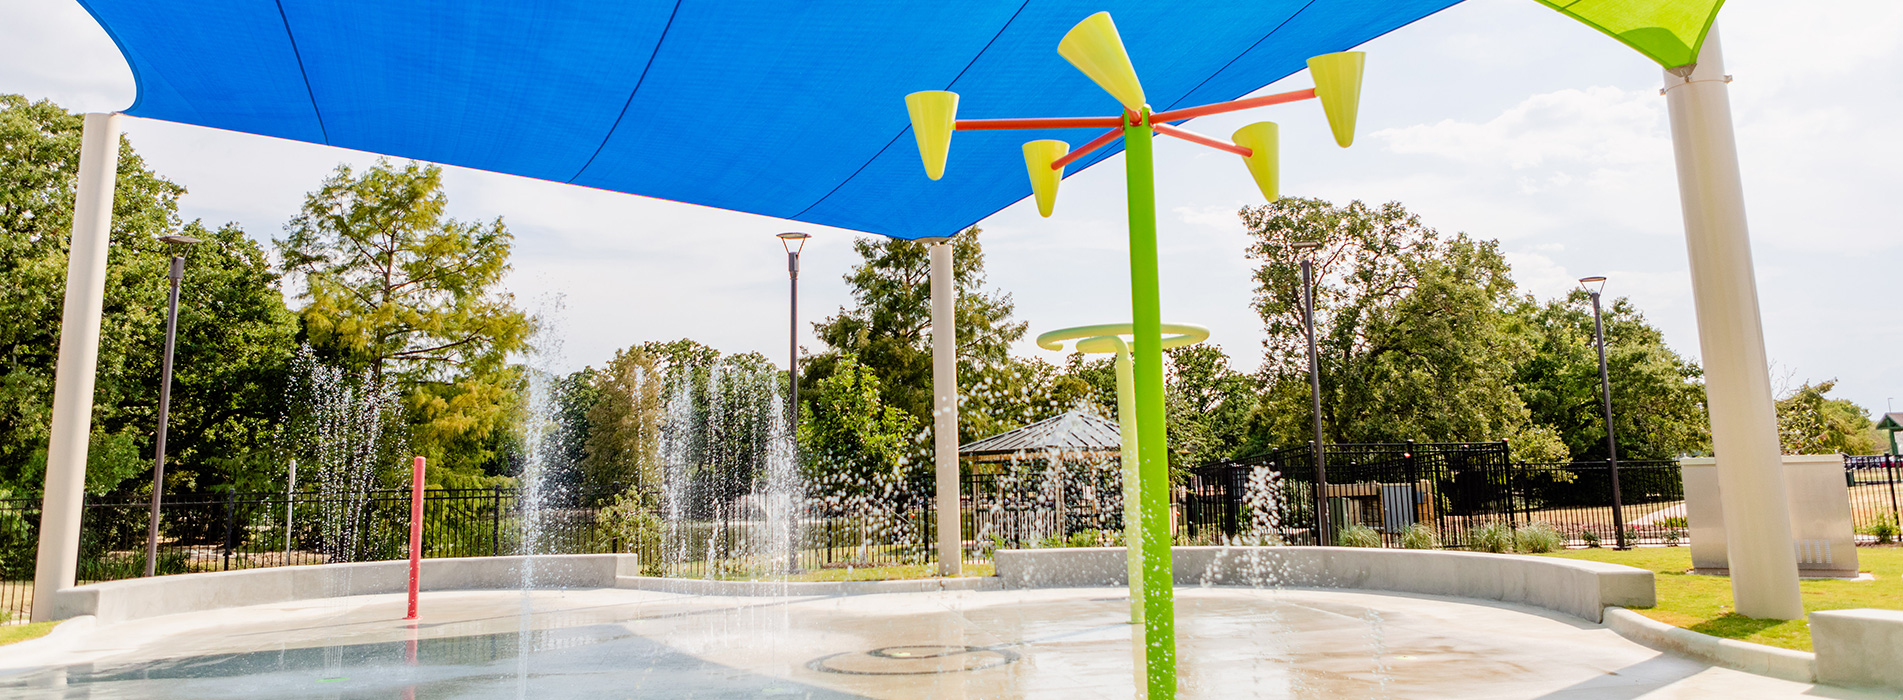 Fun for All Playground - Splash Pad